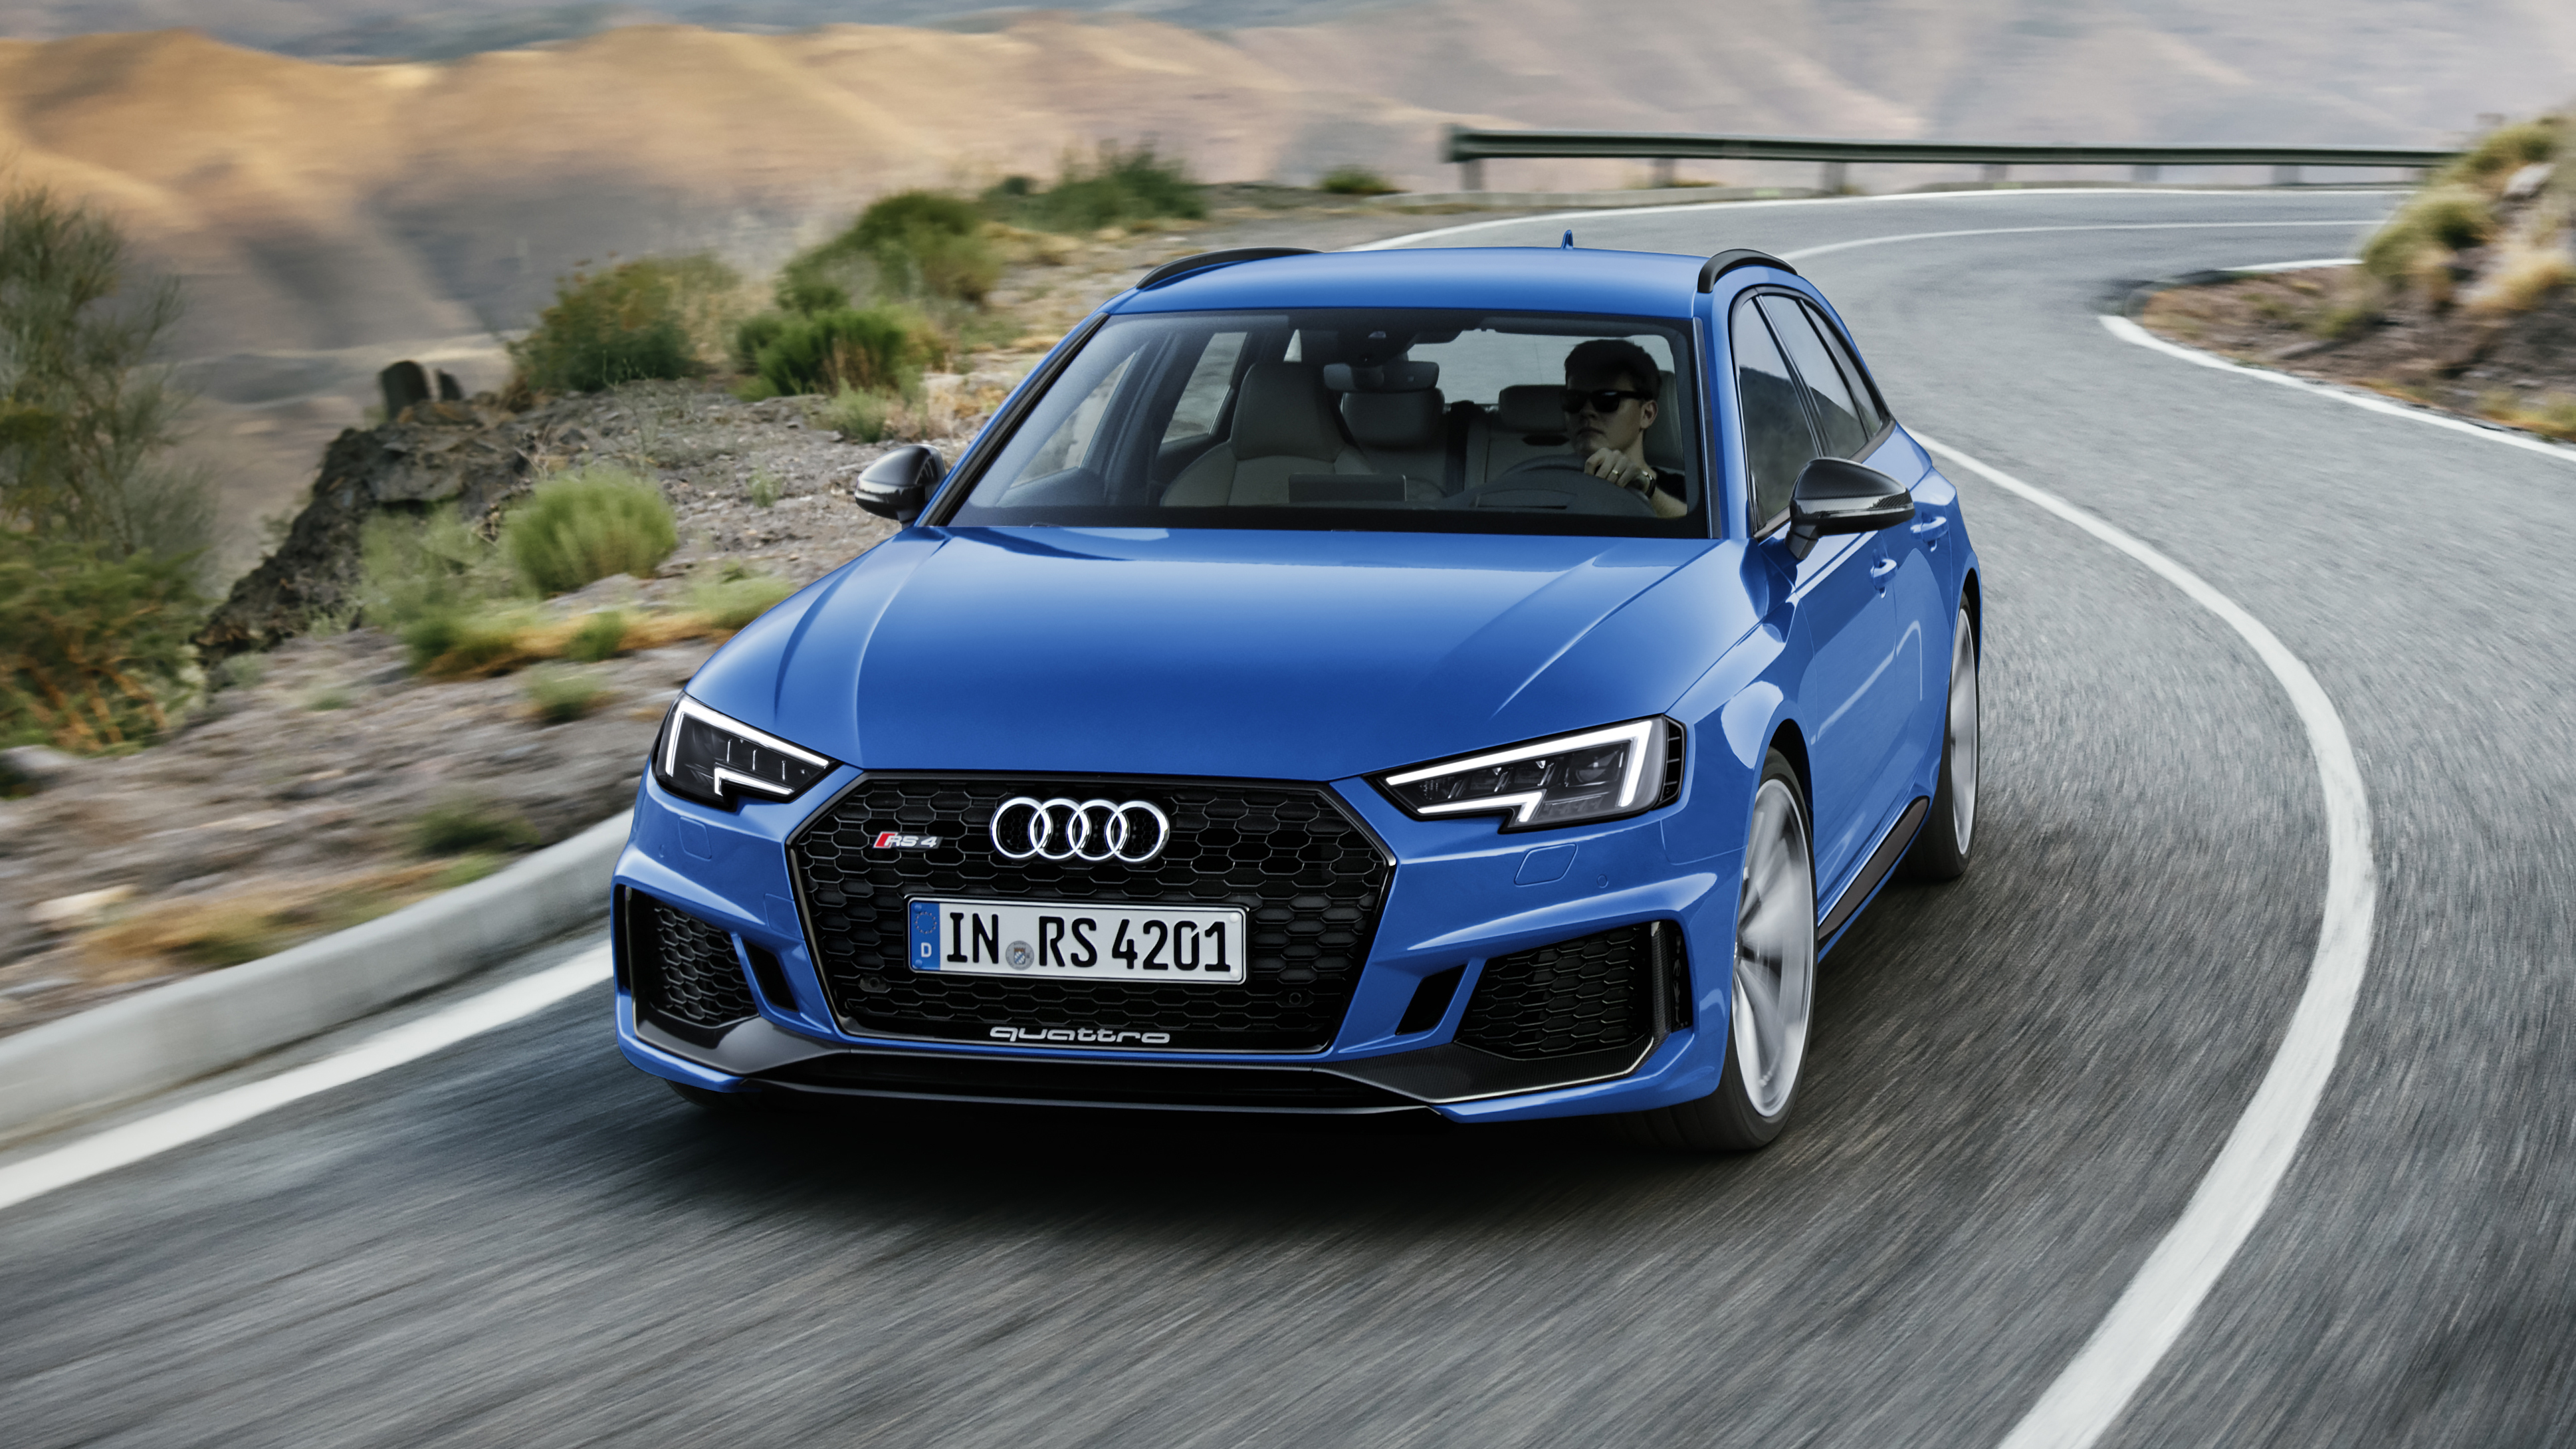 Audi RS4 front